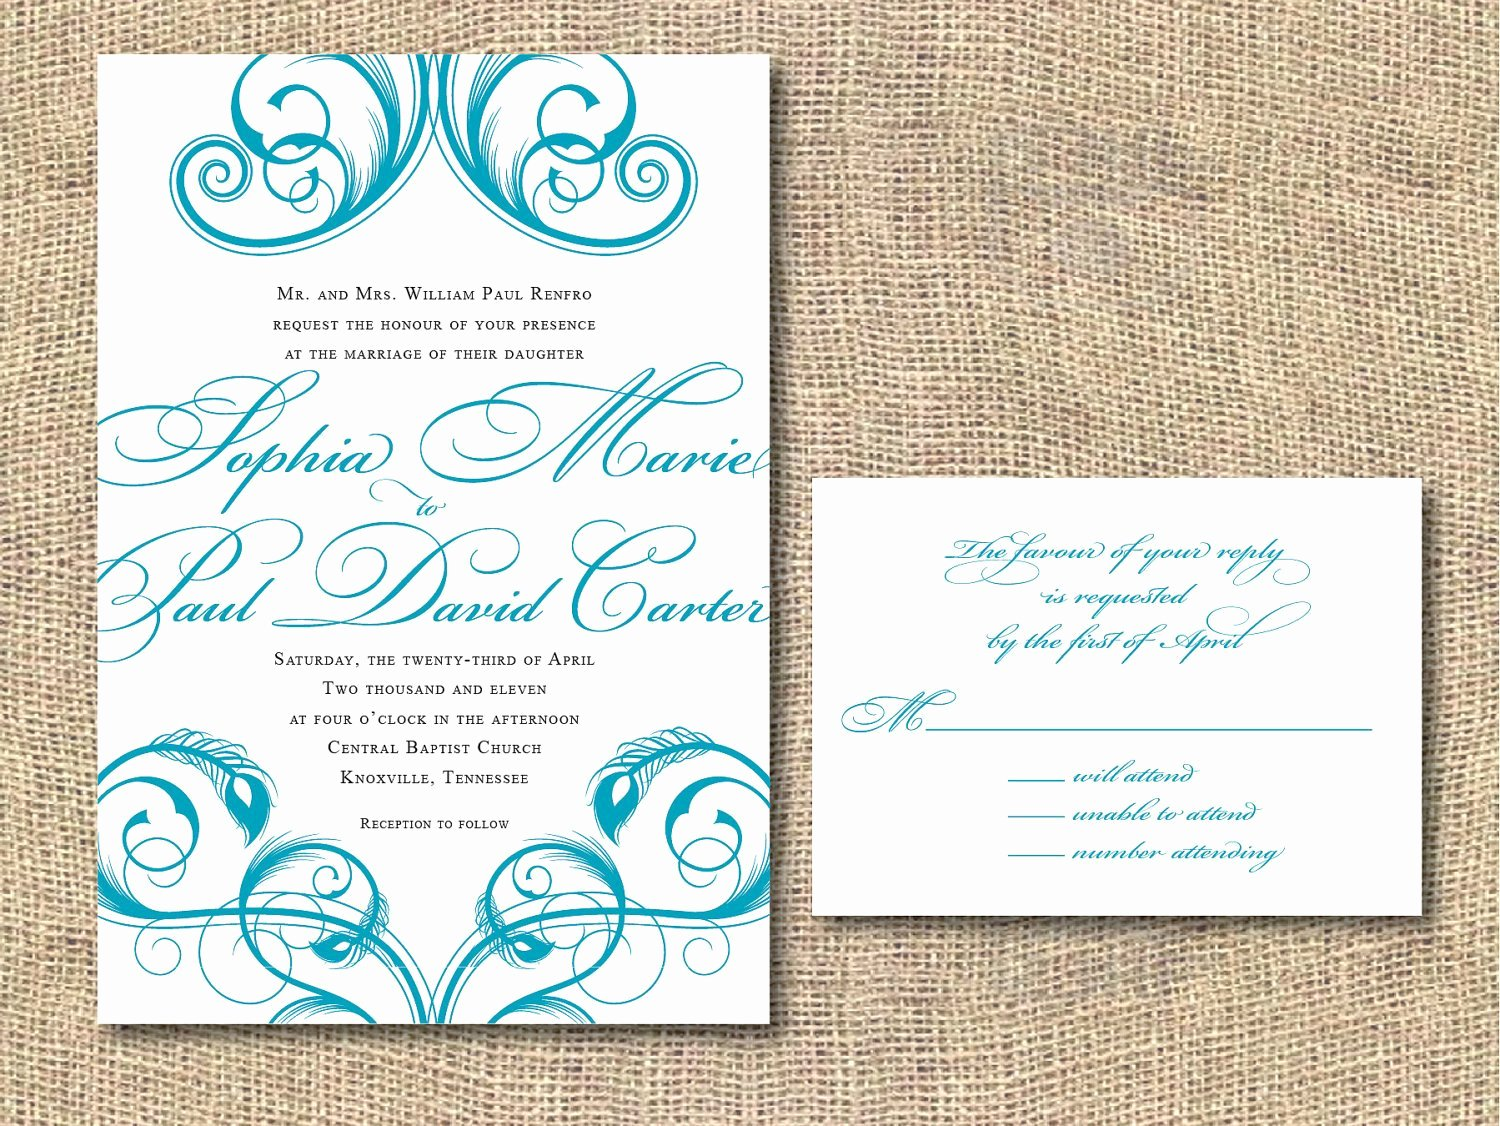 Peacock Invitations Template Free Lovely Printable Wedding Invitation Peacock by Iheartpaperandthread